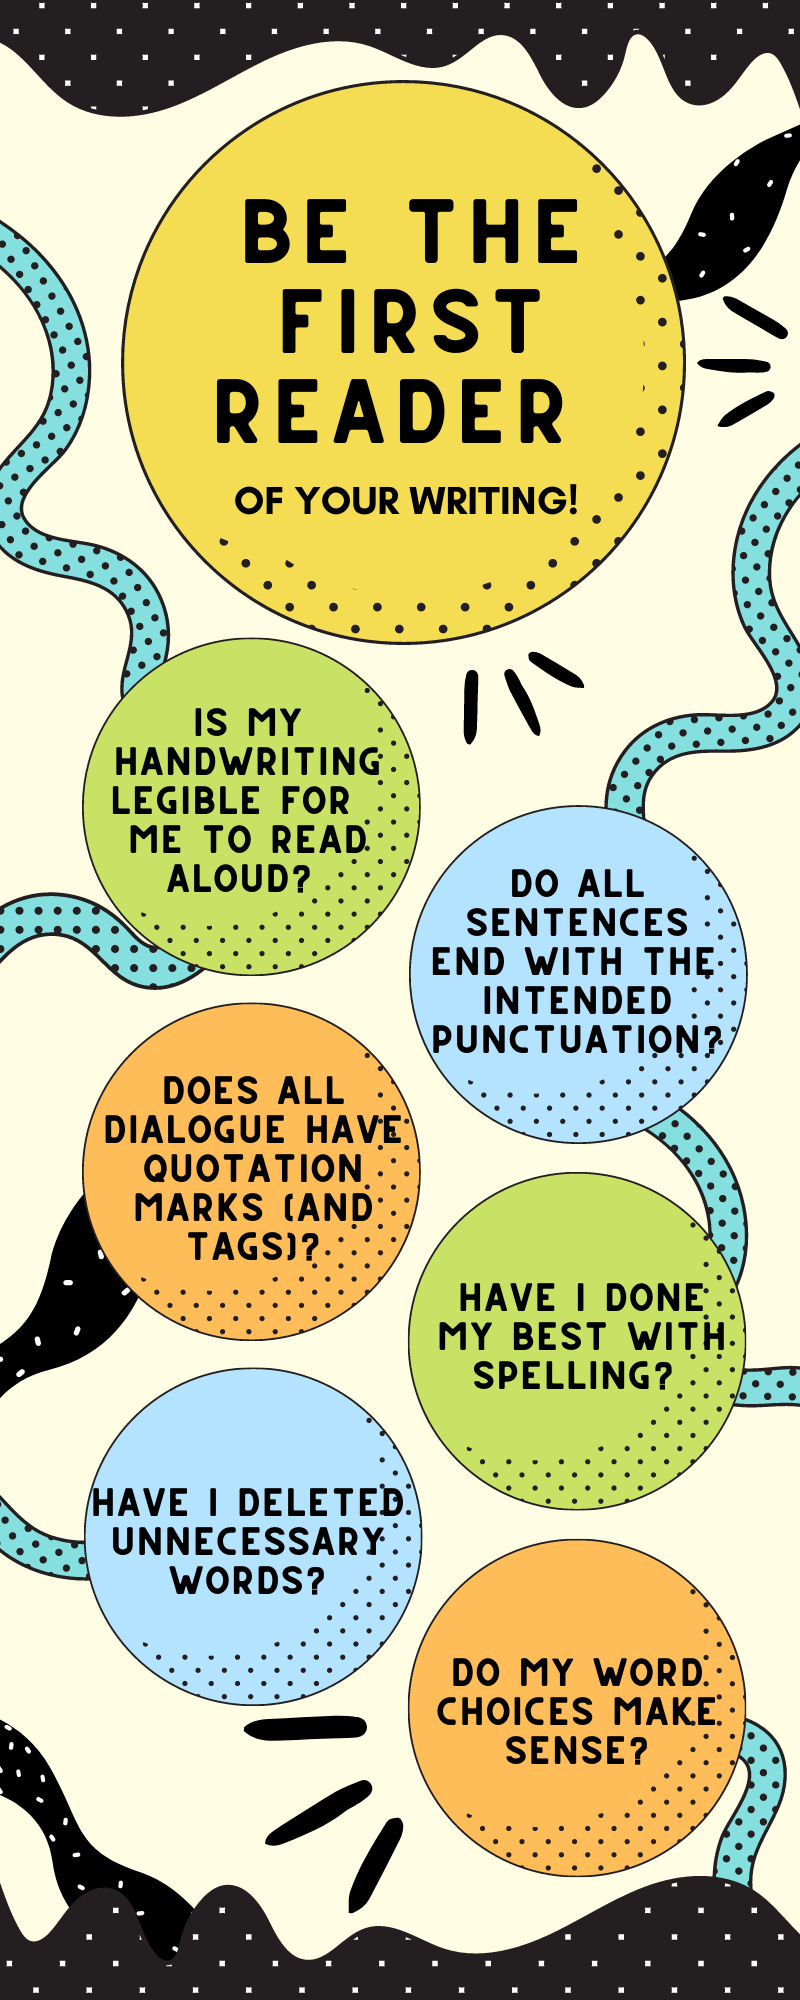 Be the first reader of your writing!